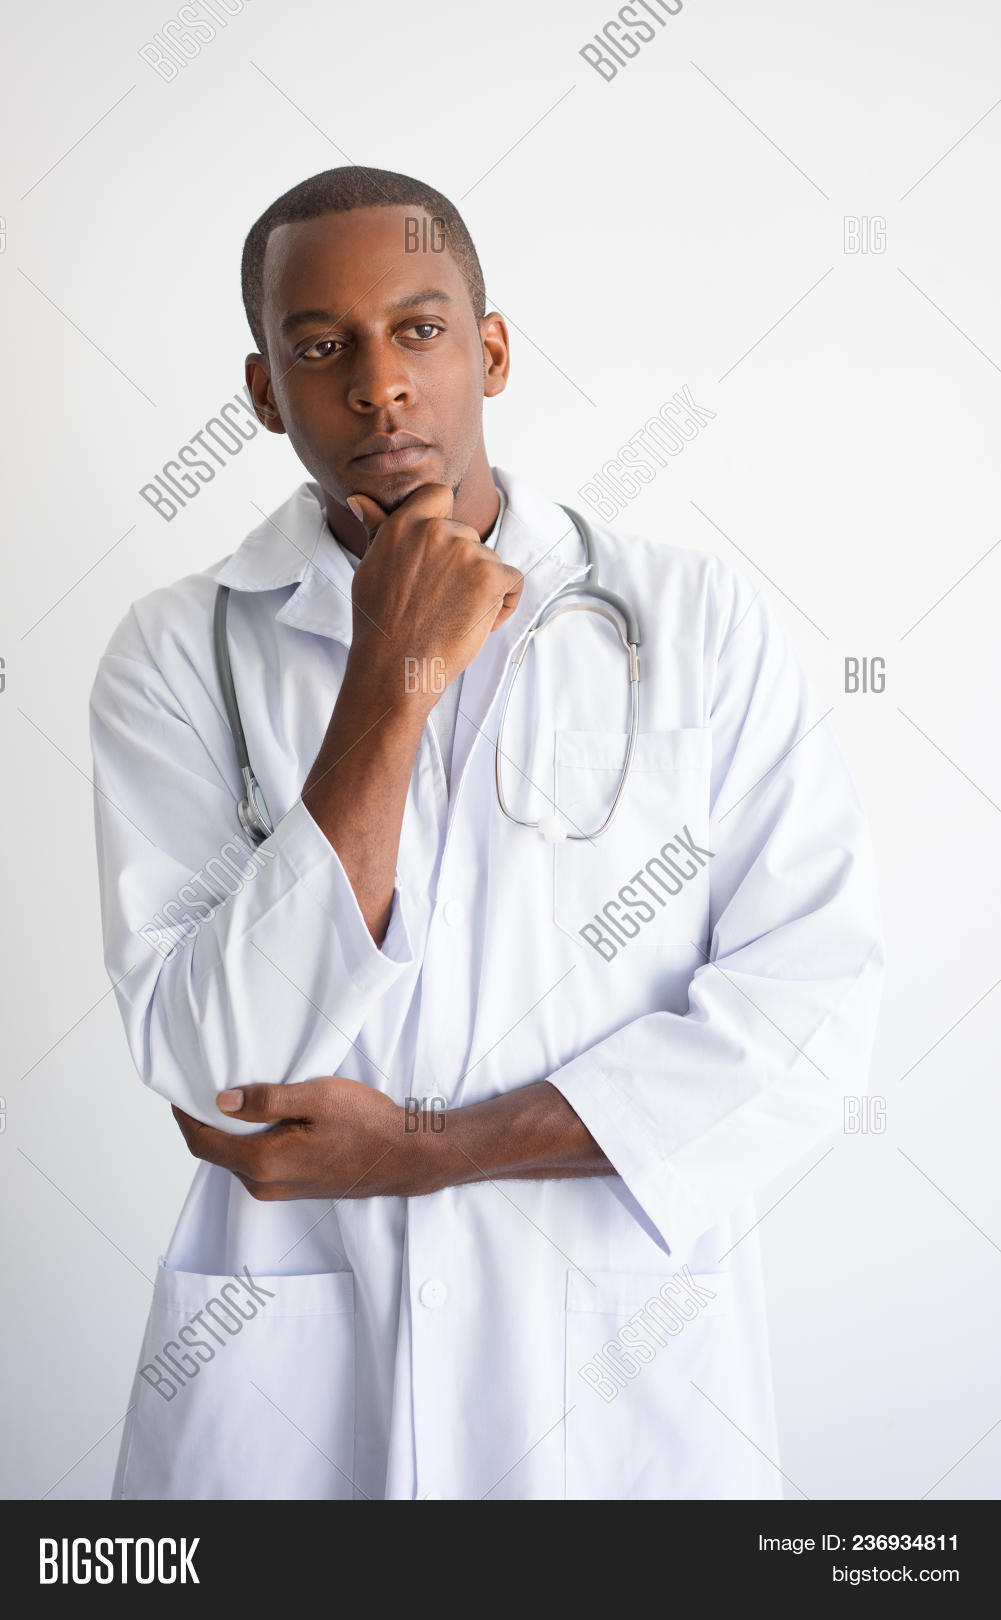 69e6f67d4d4 Pensive black male doctor touching chin. Medical decision concept. Isolated  front view on white background.